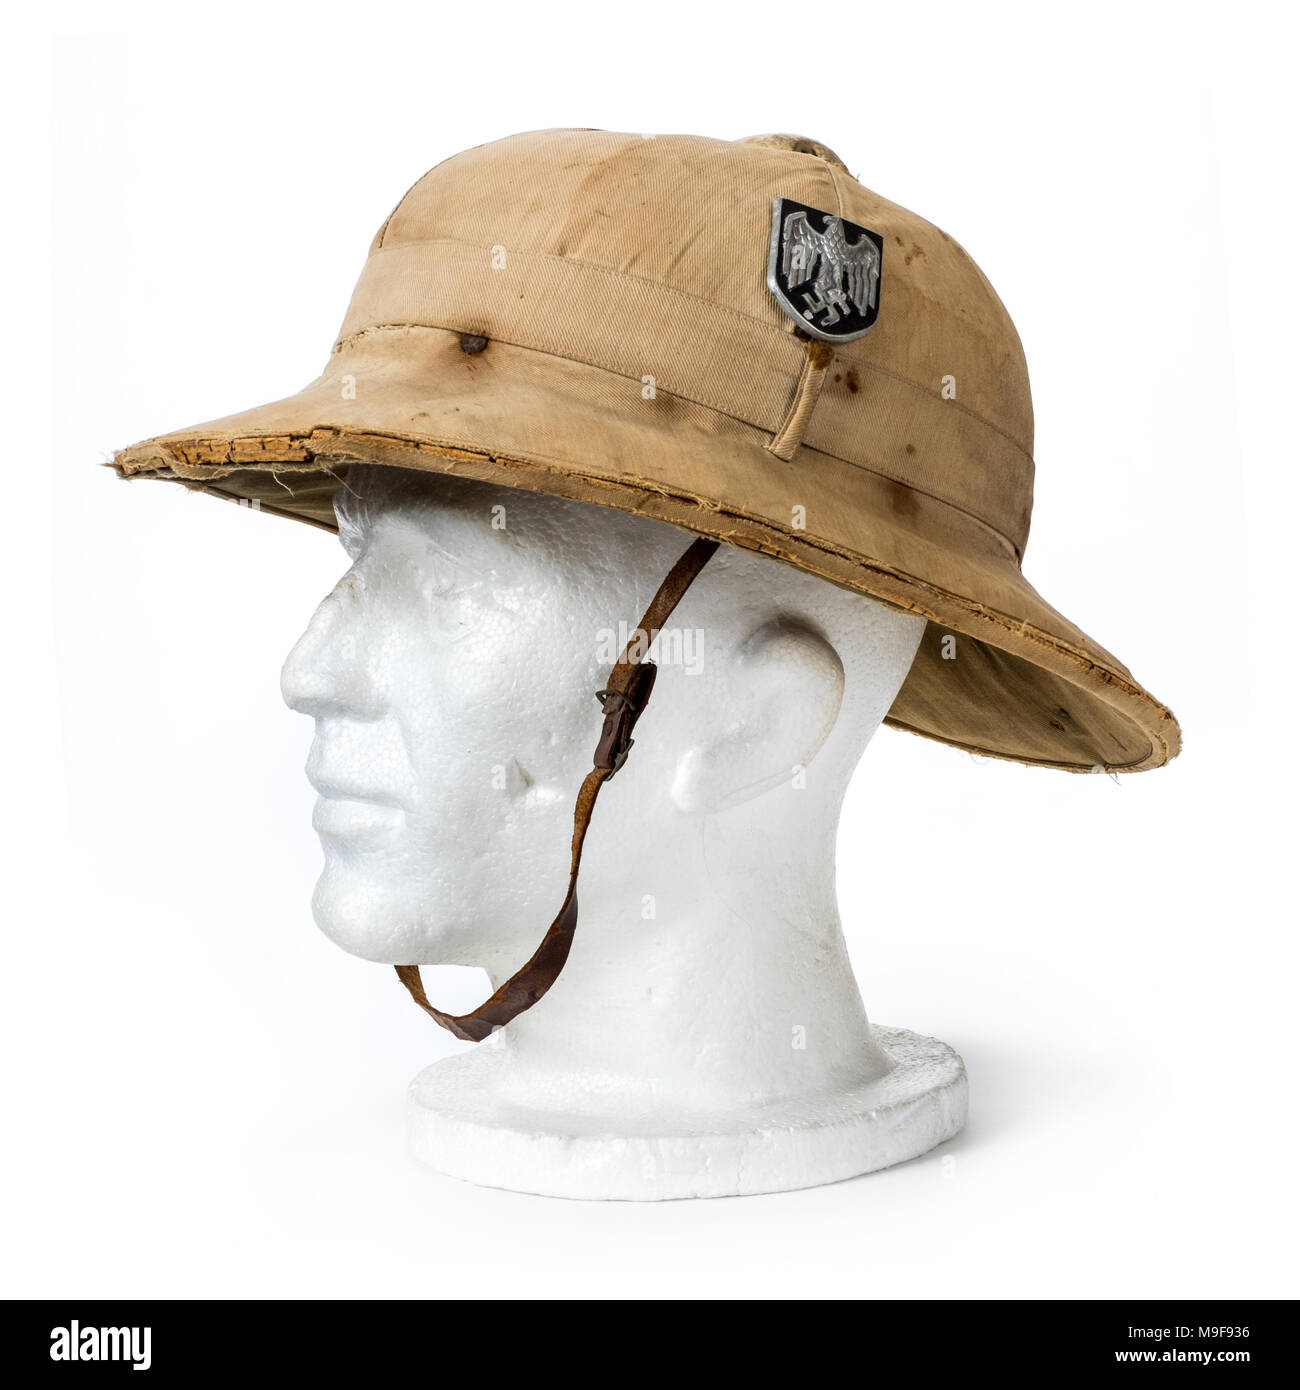 365cb05553630 WW2 German Third Reich Afrika Korps tropical pith helmet with original  Wermacht decals featuring the Swastika